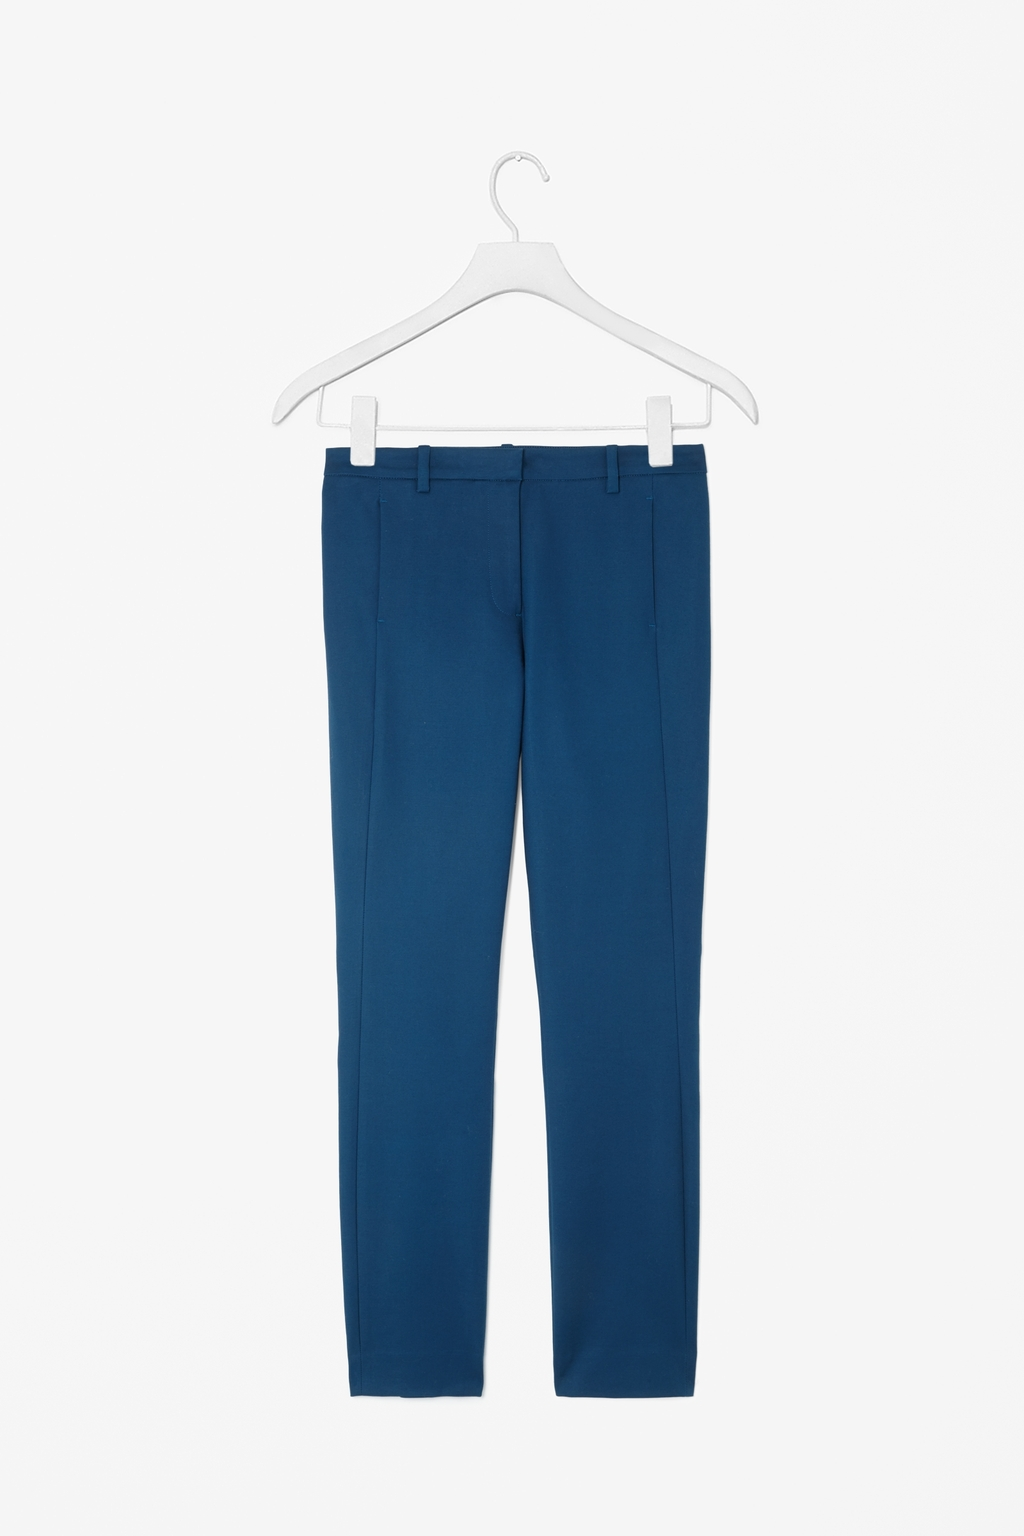 Slim Cotton Trousers - length: standard; pattern: plain; waist: mid/regular rise; predominant colour: royal blue; occasions: casual, evening, creative work; style: chino; fibres: cotton - stretch; texture group: cotton feel fabrics; fit: slim leg; pattern type: fabric; season: s/s 2014